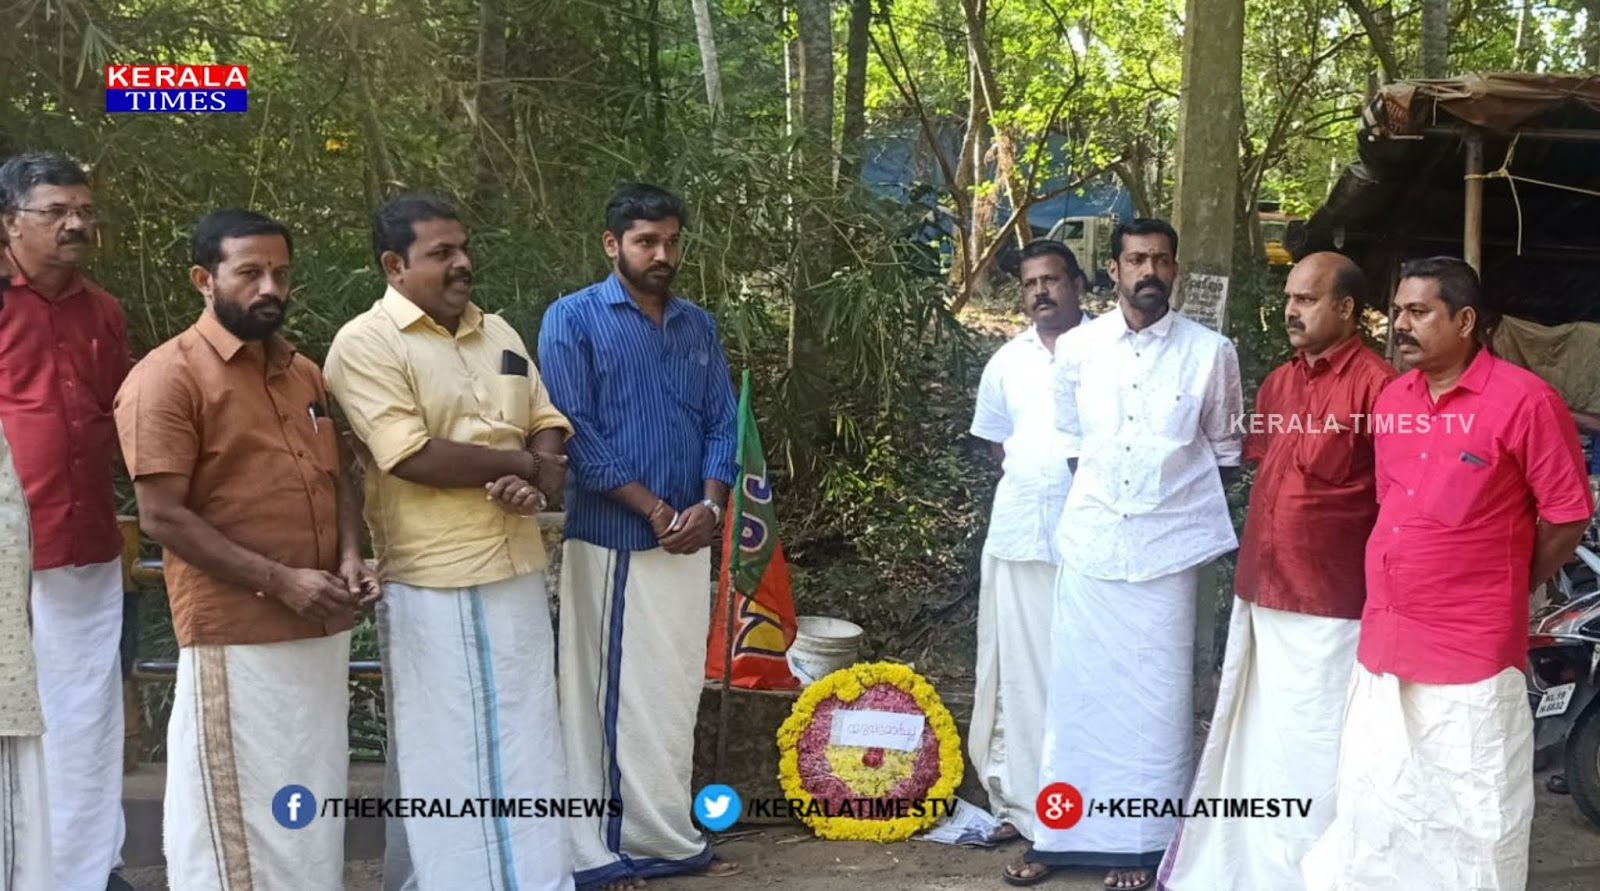 Overloaded vehicles destroying the causeway;  Young Mormon activists protested with wreaths,www.thekeralatimes.com